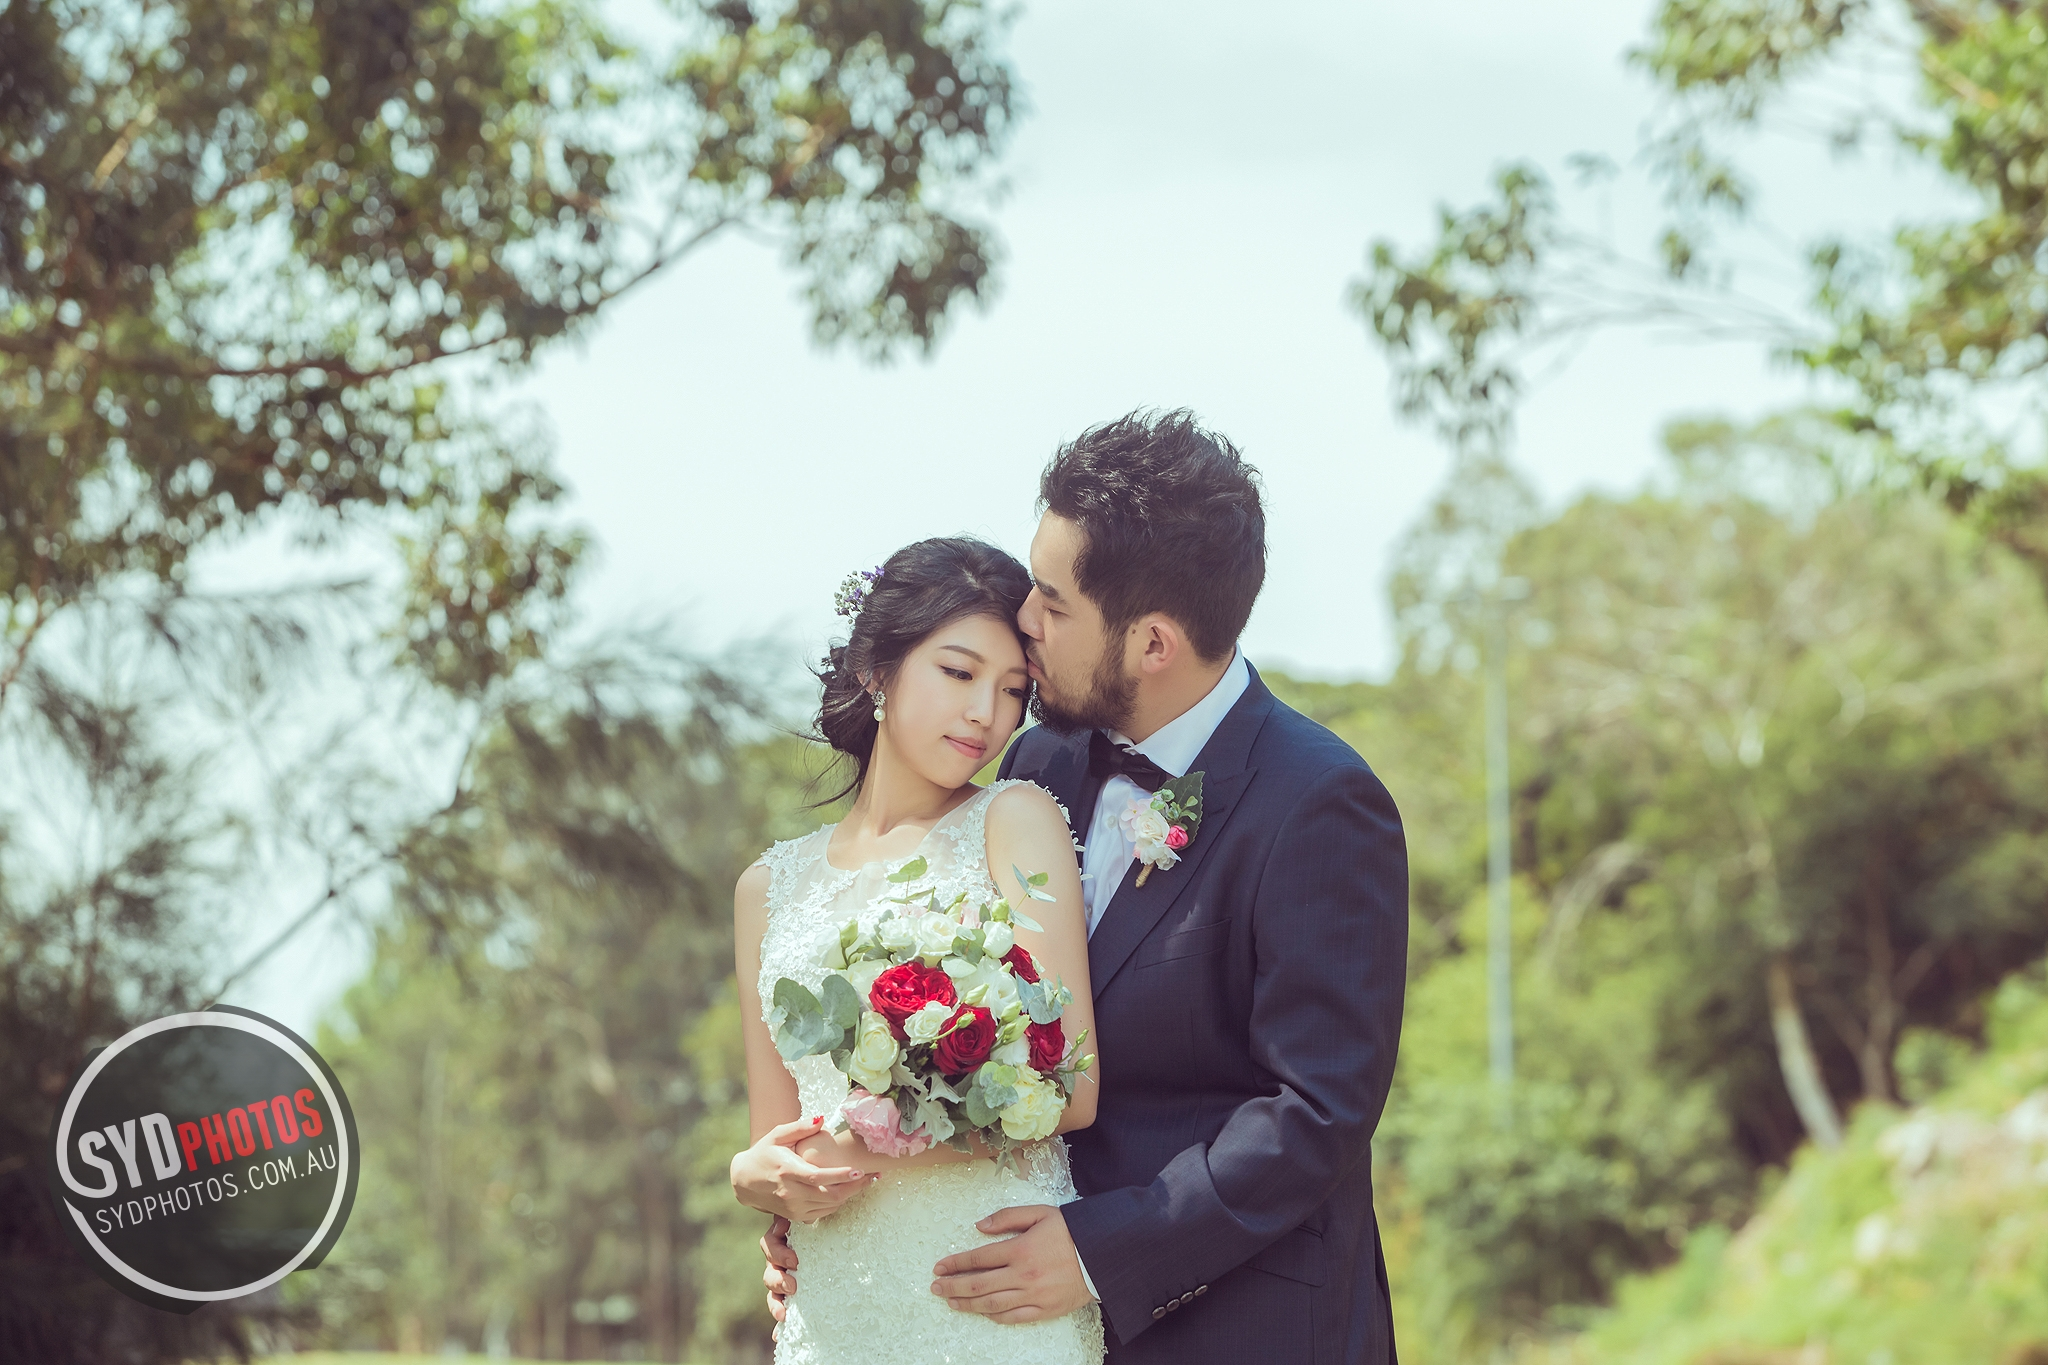 ID-89483-20180122-322.jpg, By Photographer Sydphotos.wedding, Created on 25 Oct 2018, SYDPHOTOS Photography all rights reserved.